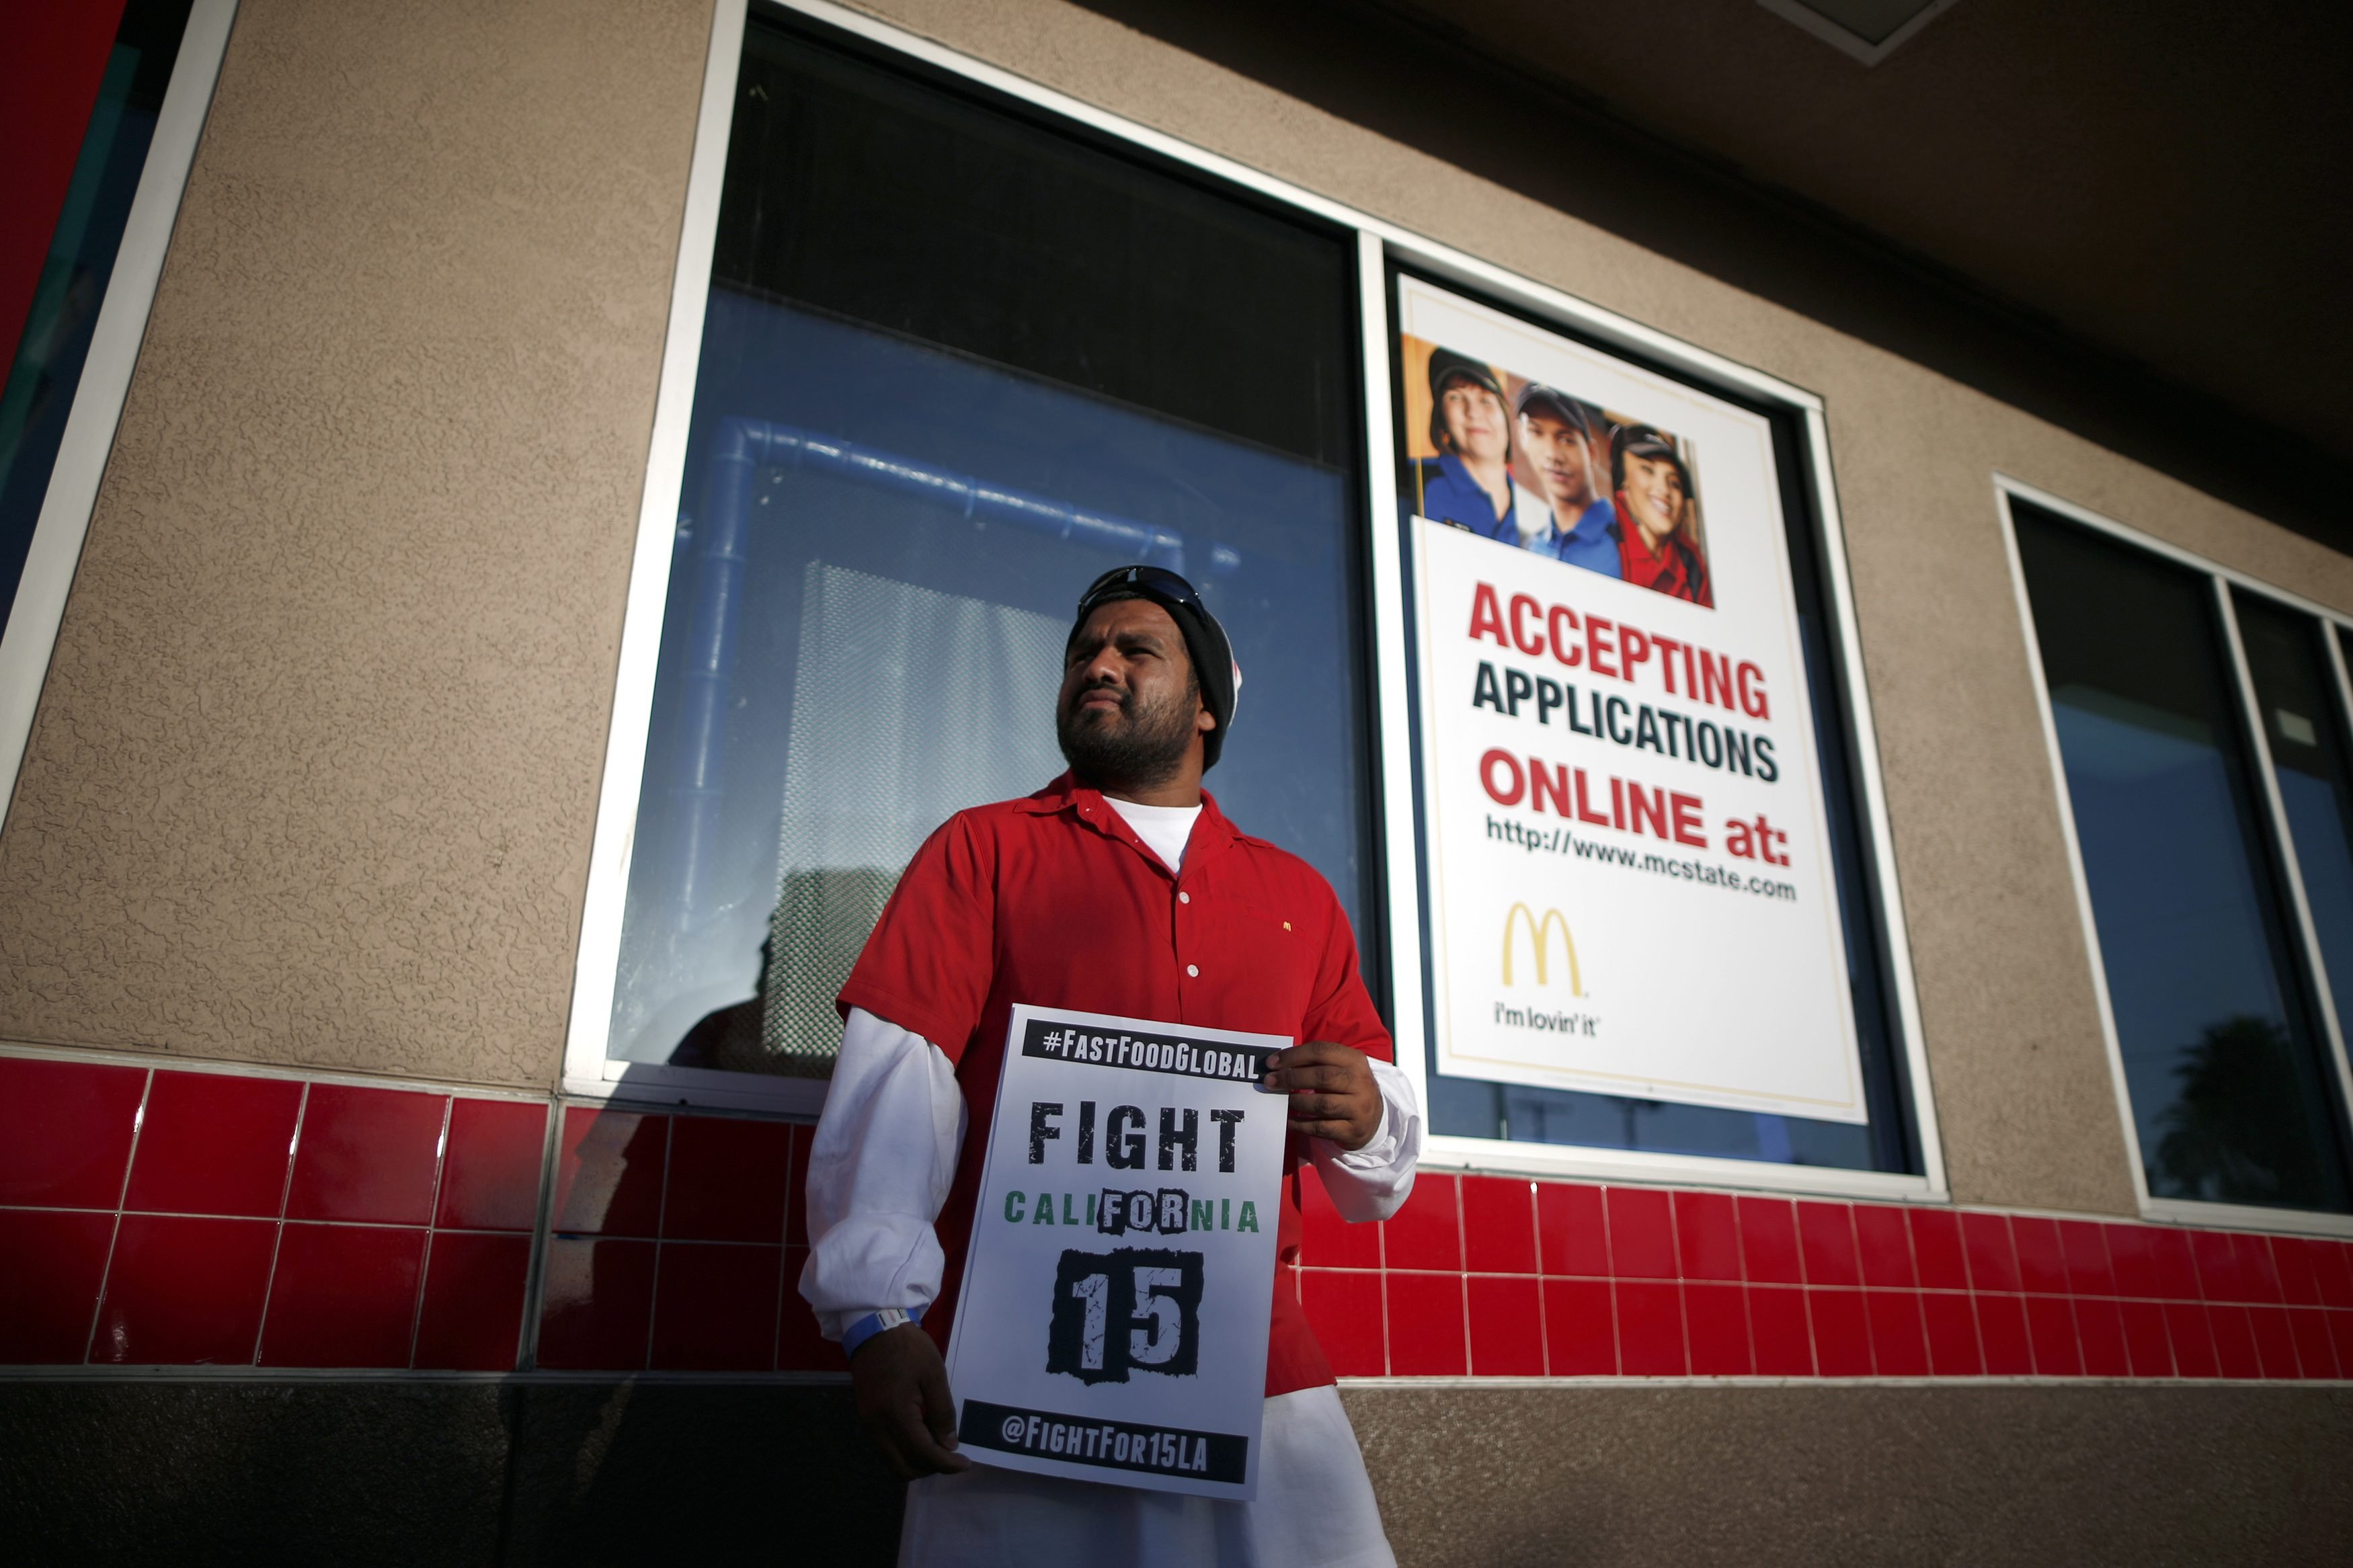 <b>Los Angeles:</b>  Fernando Gutierrez, 26, takes part in a protest to demand higher wages for fast-food workers outside McDonald's on May 15, 2014.